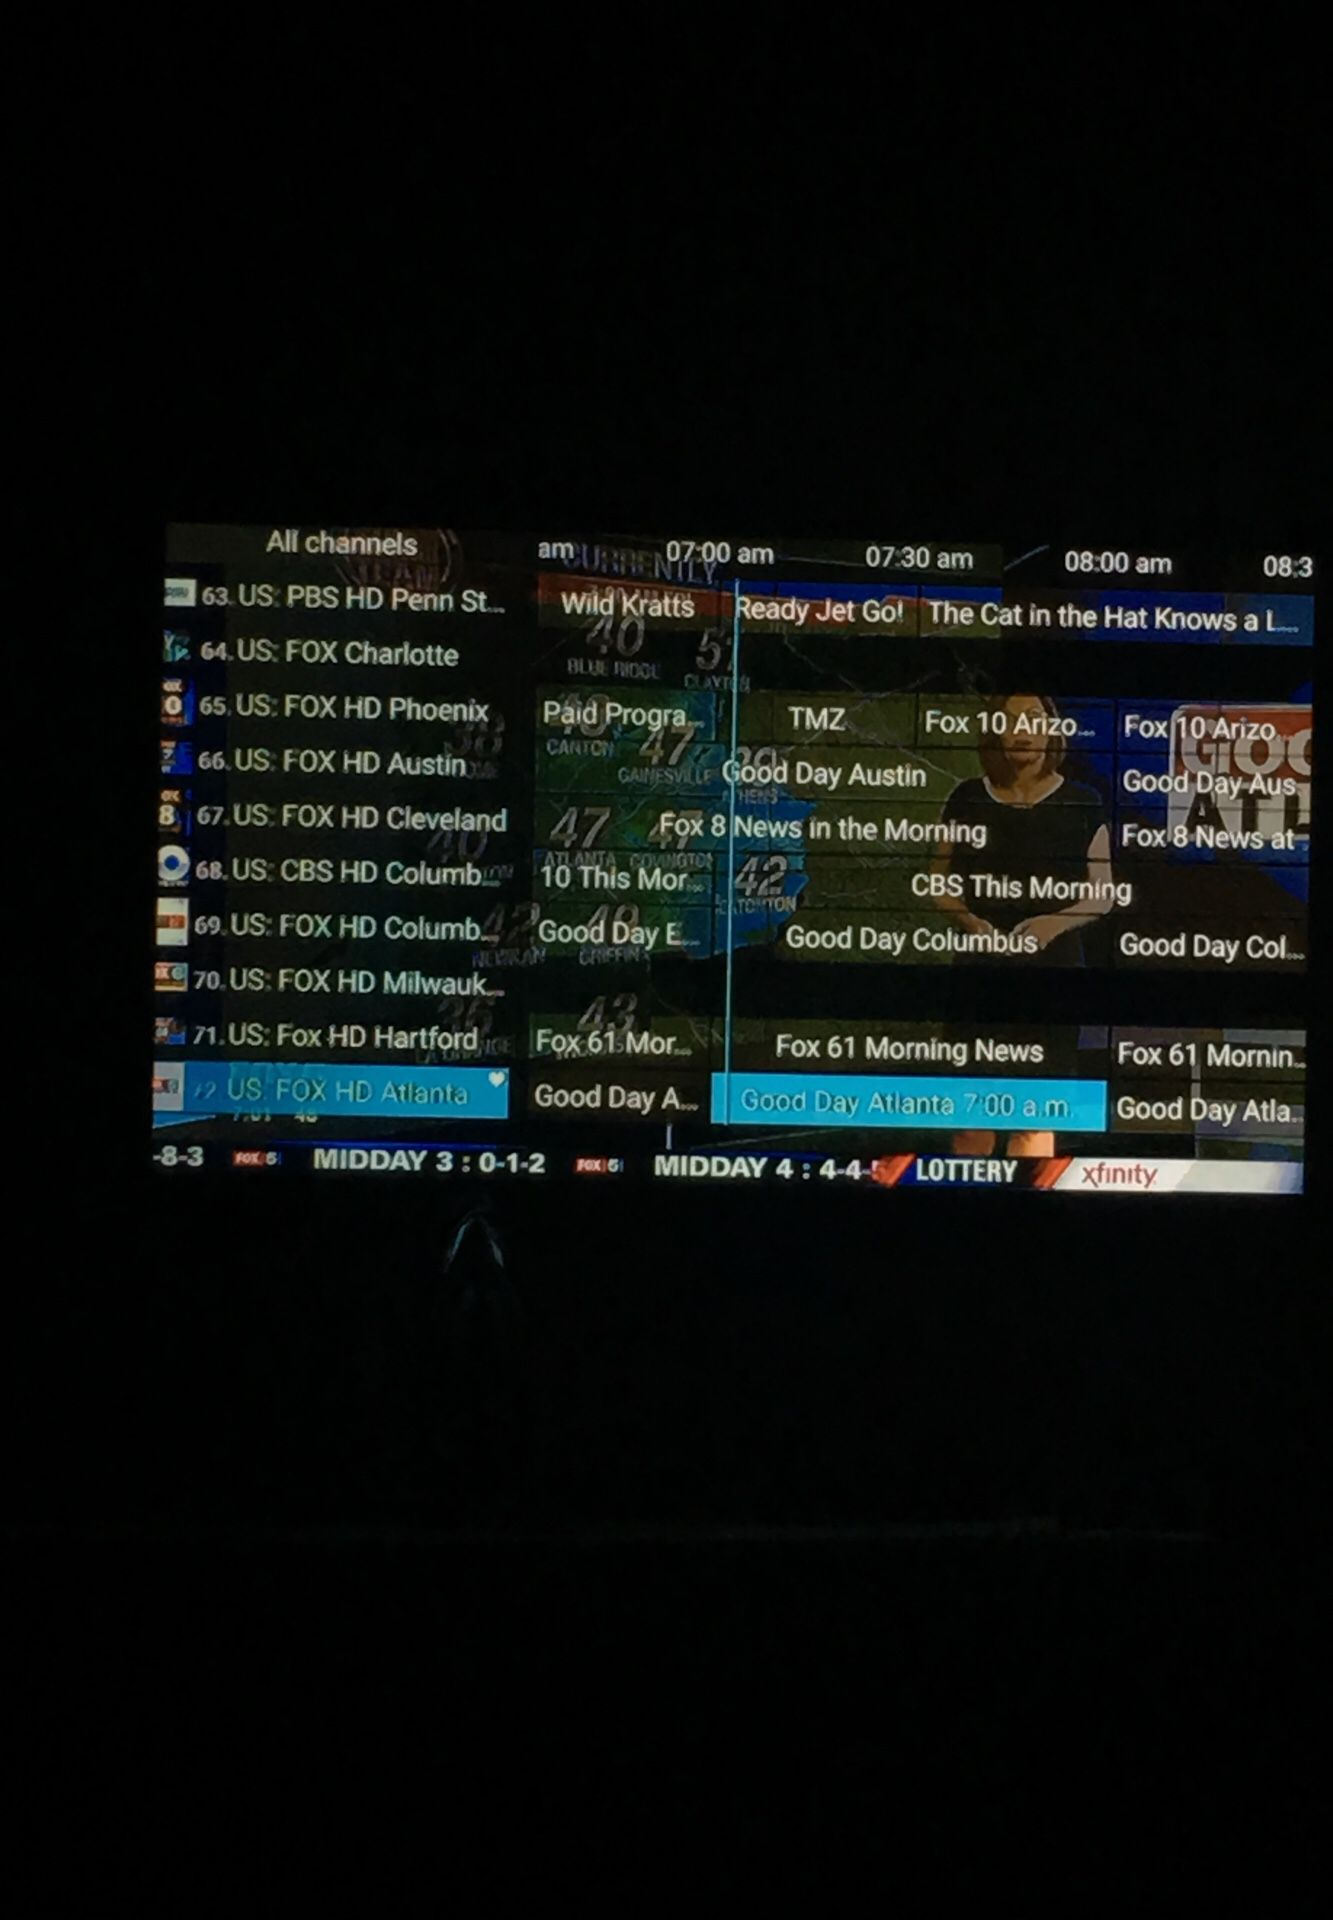 2000 channels unlimited streaming